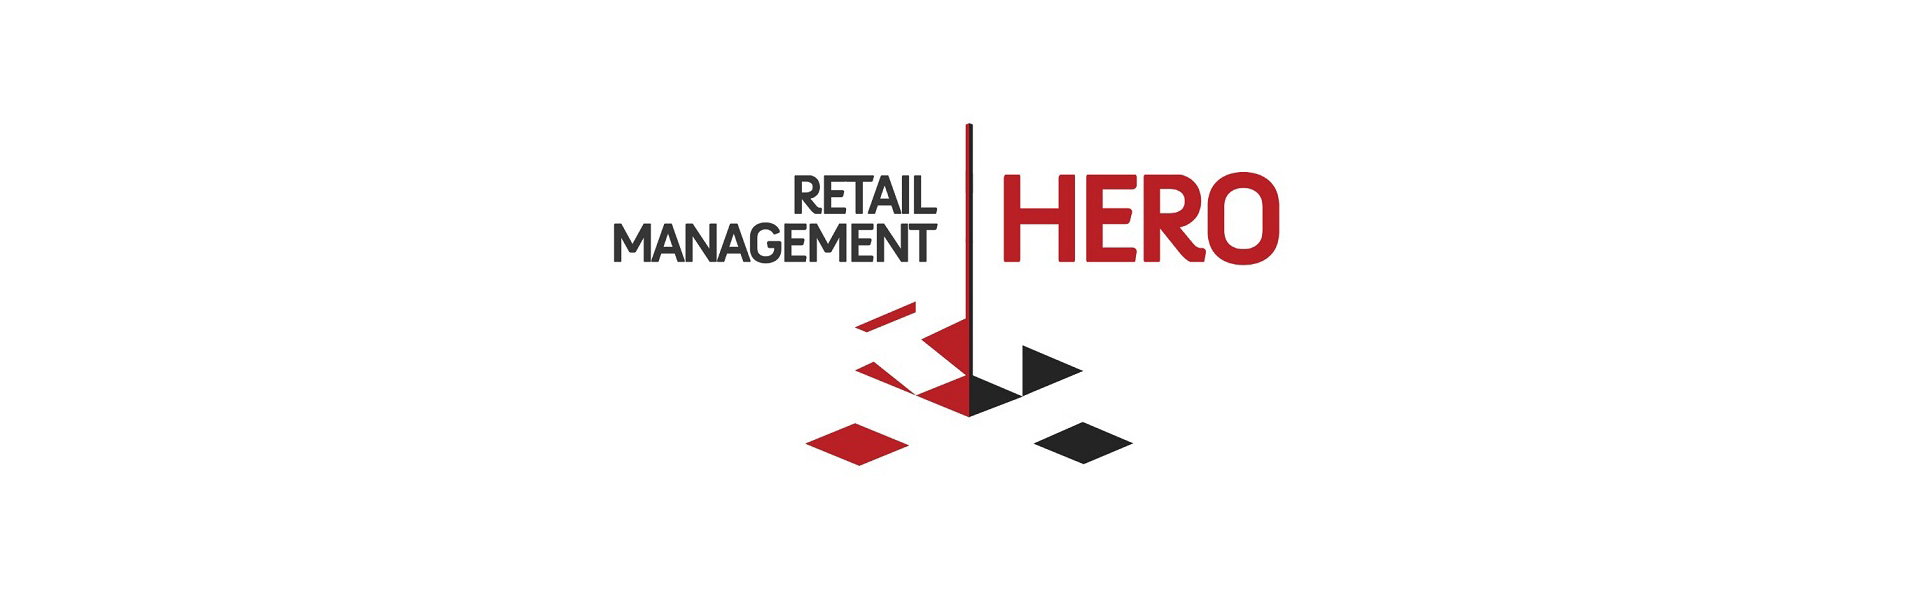 Introducing Retail Management Hero 3.0